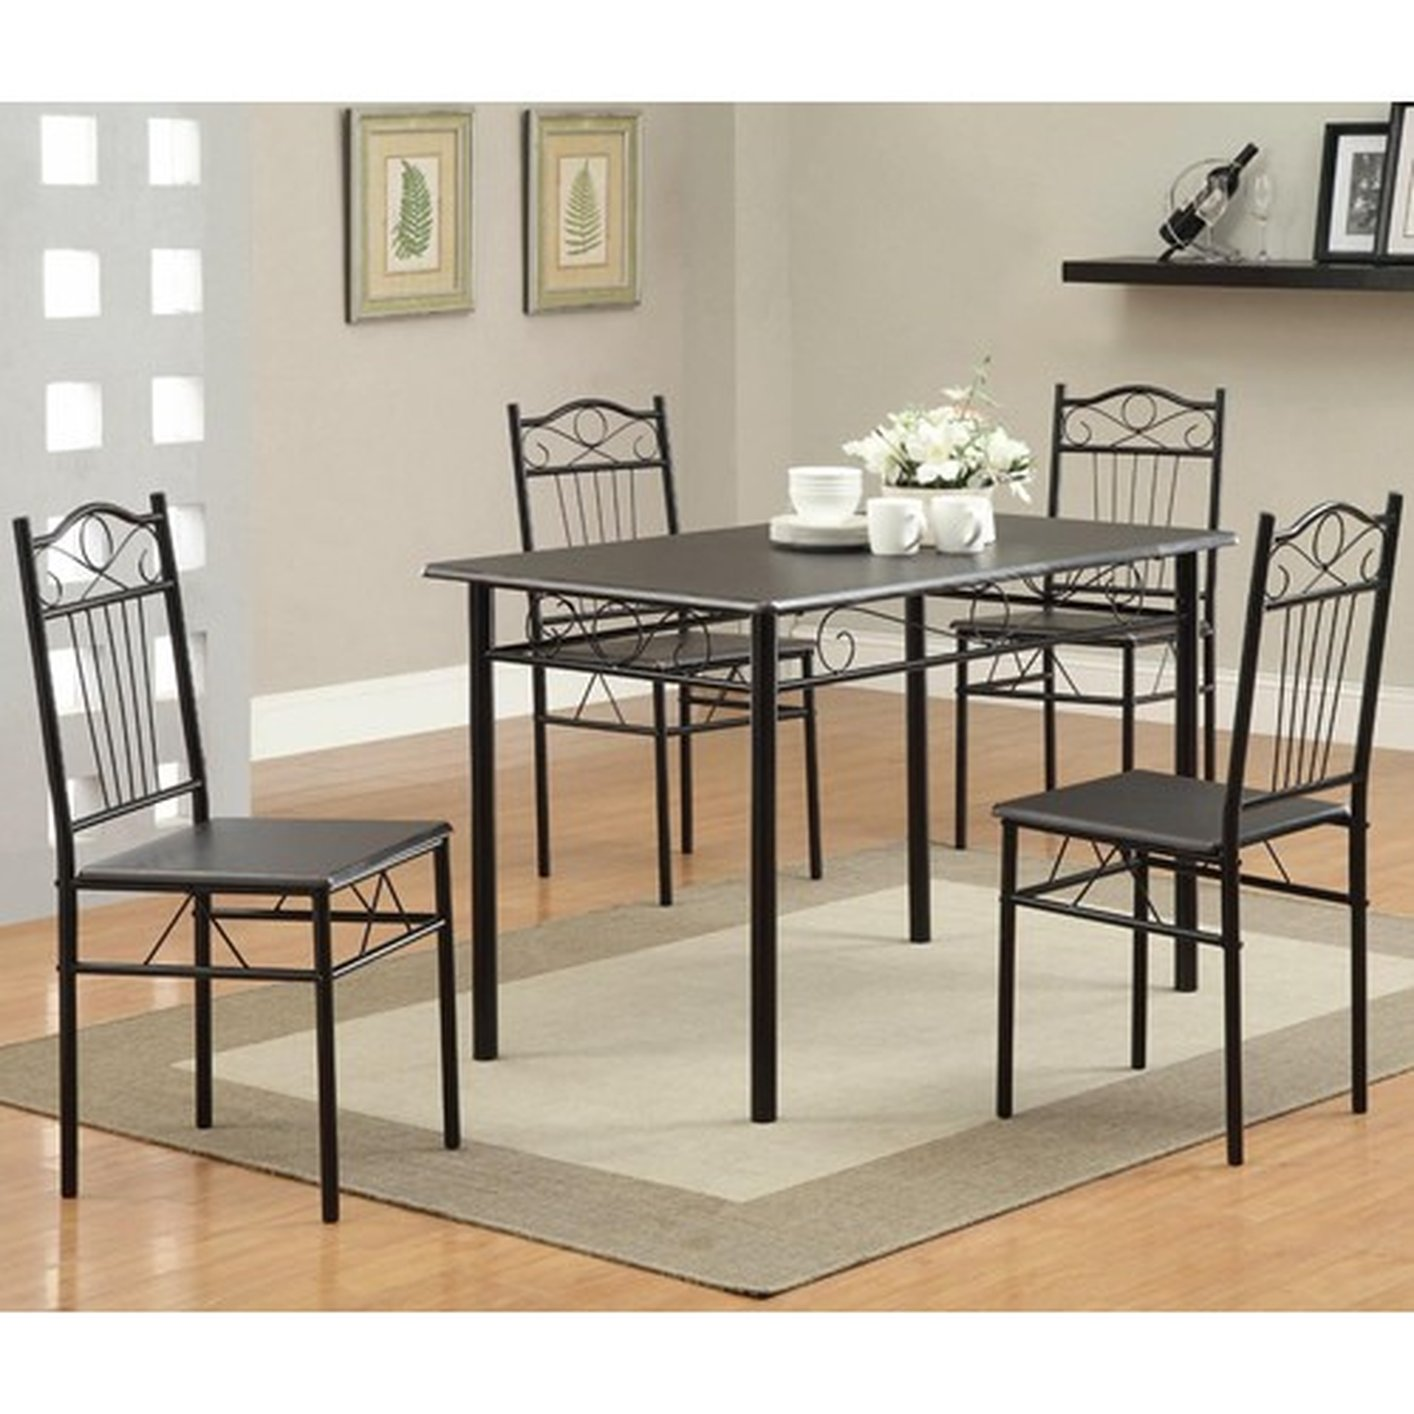 Black Metal Dining Chairs Black Metal Dining Table And Chair Set   Steal A